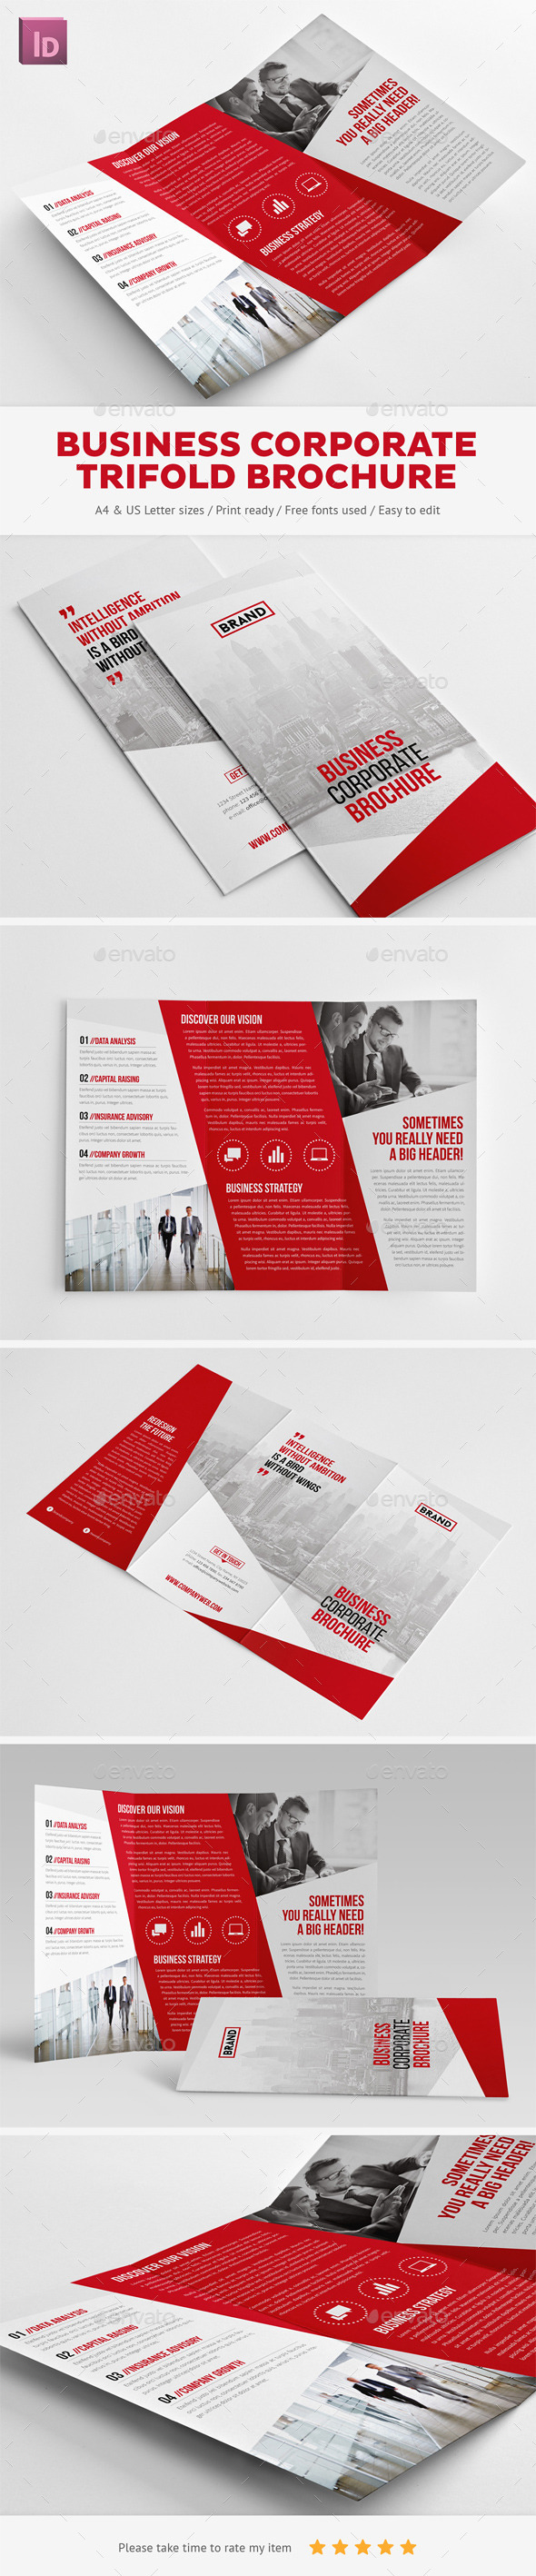 GraphicRiver Business Corporate Trifold Brochure 10353710